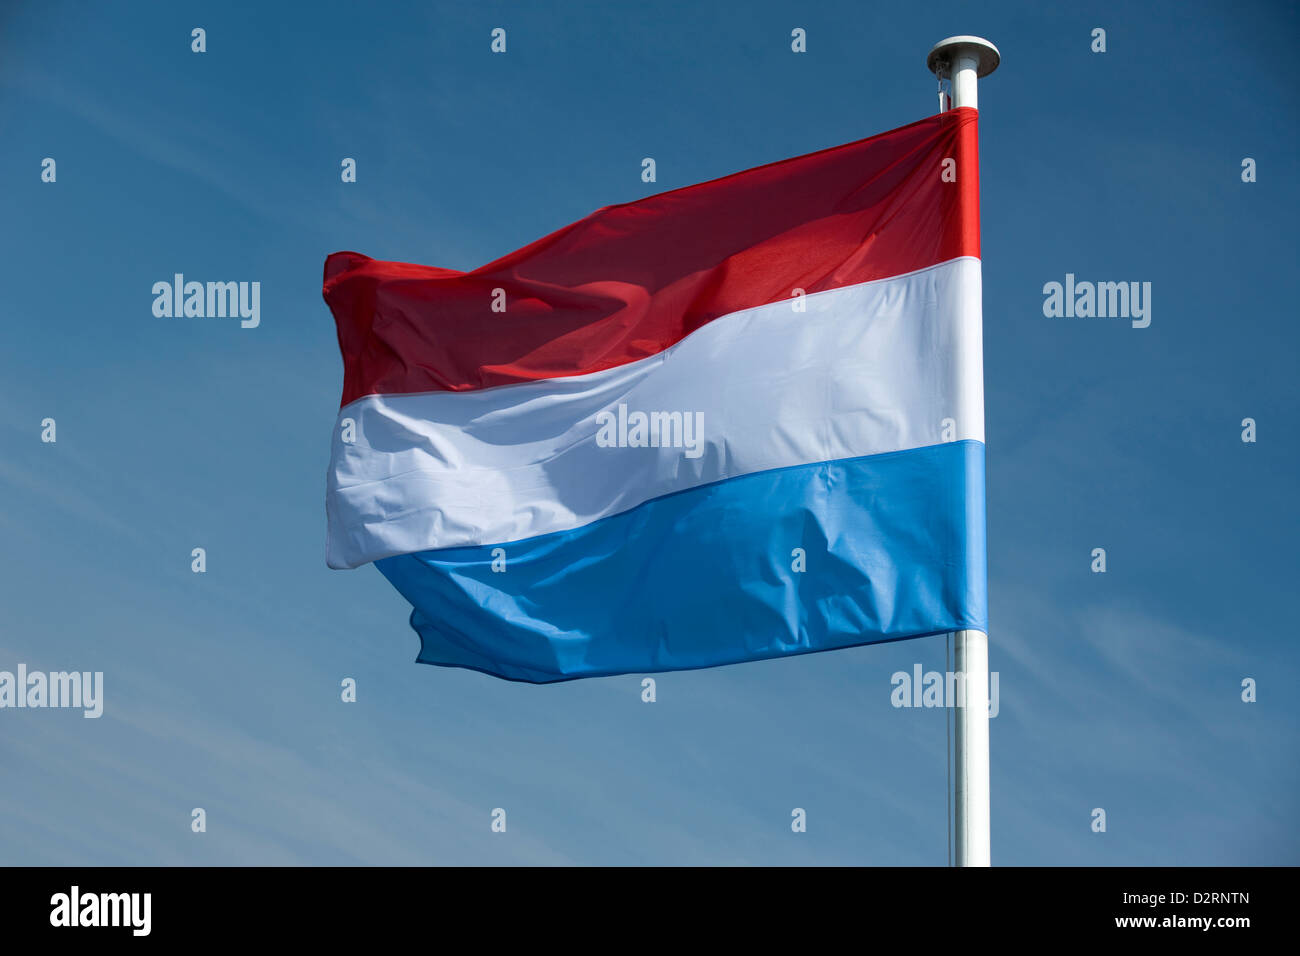 DUTCH FLAG FLYING ON FLAGPOLE - Stock Image